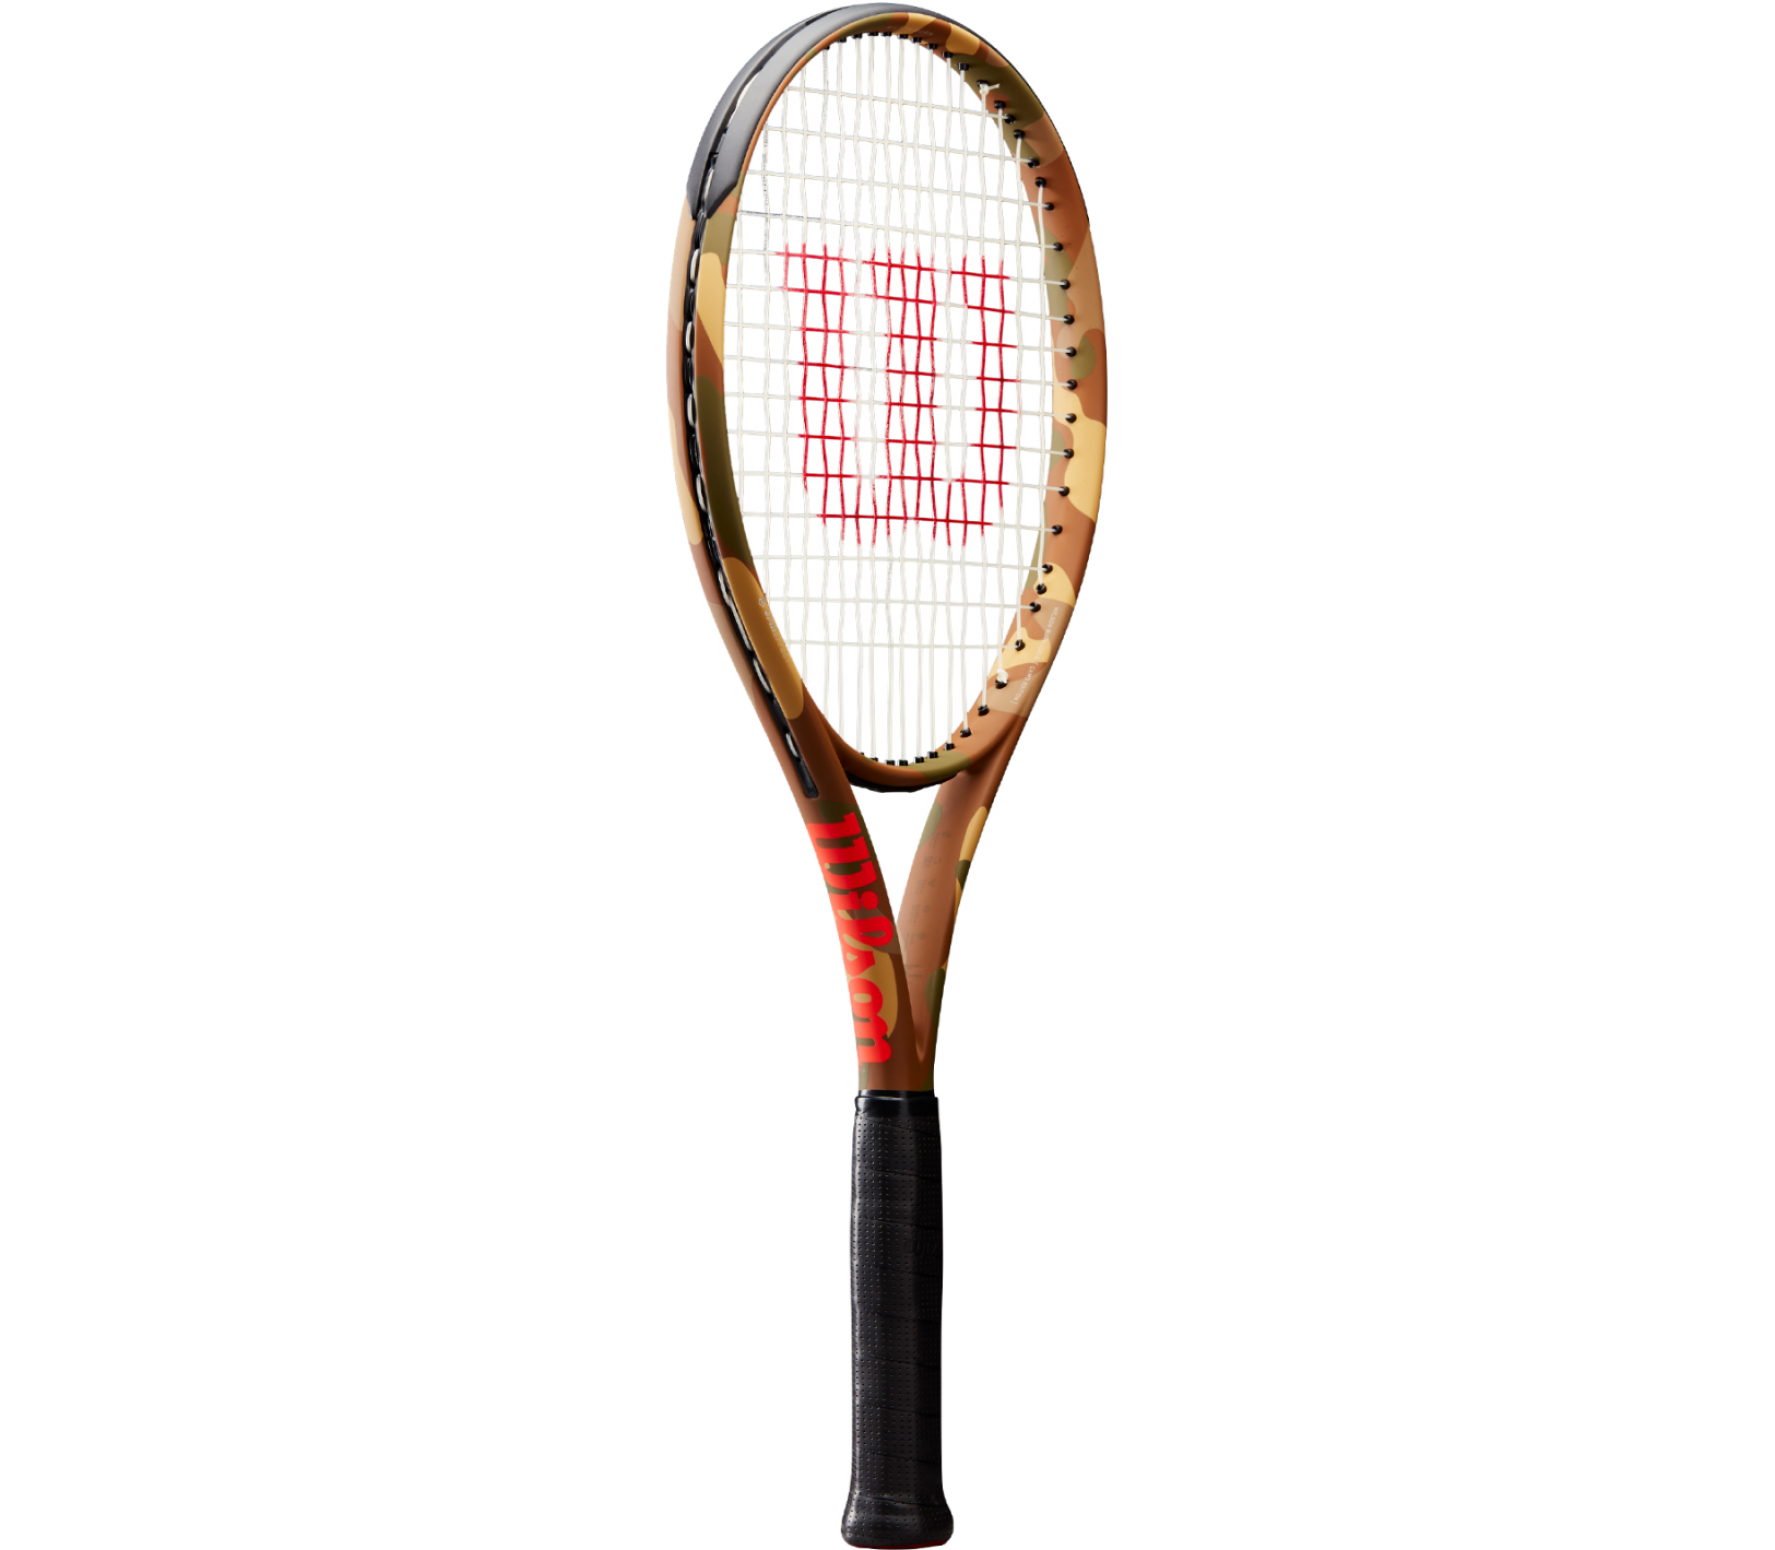 Wilson - Burn 100 LS Camo tennis racket (orange)